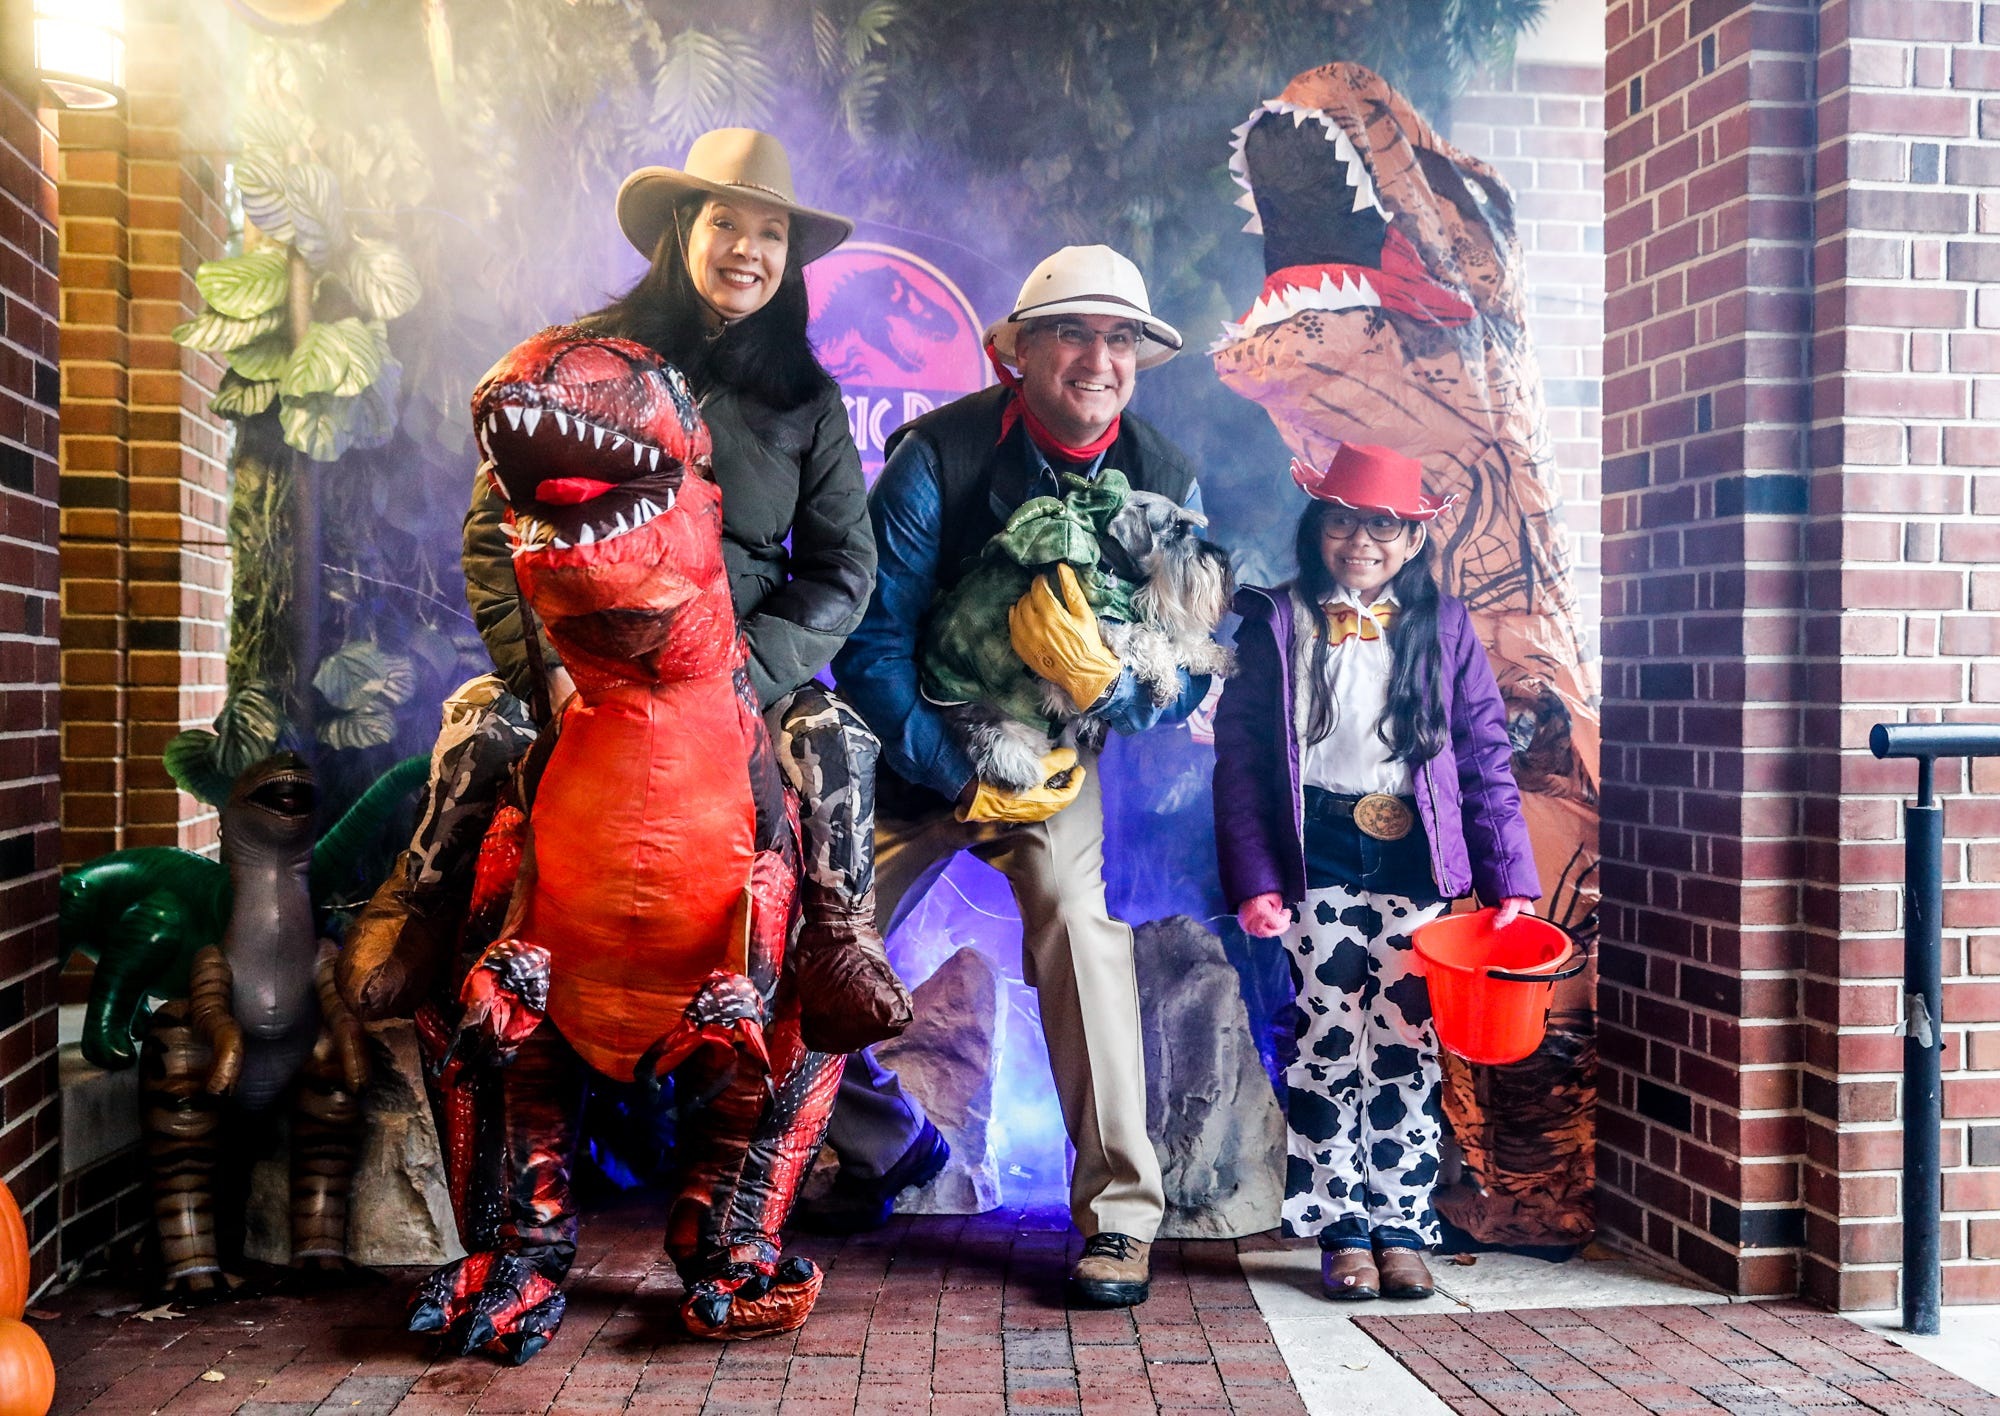 A Jurassic Park Halloween at the Governor's Mansion